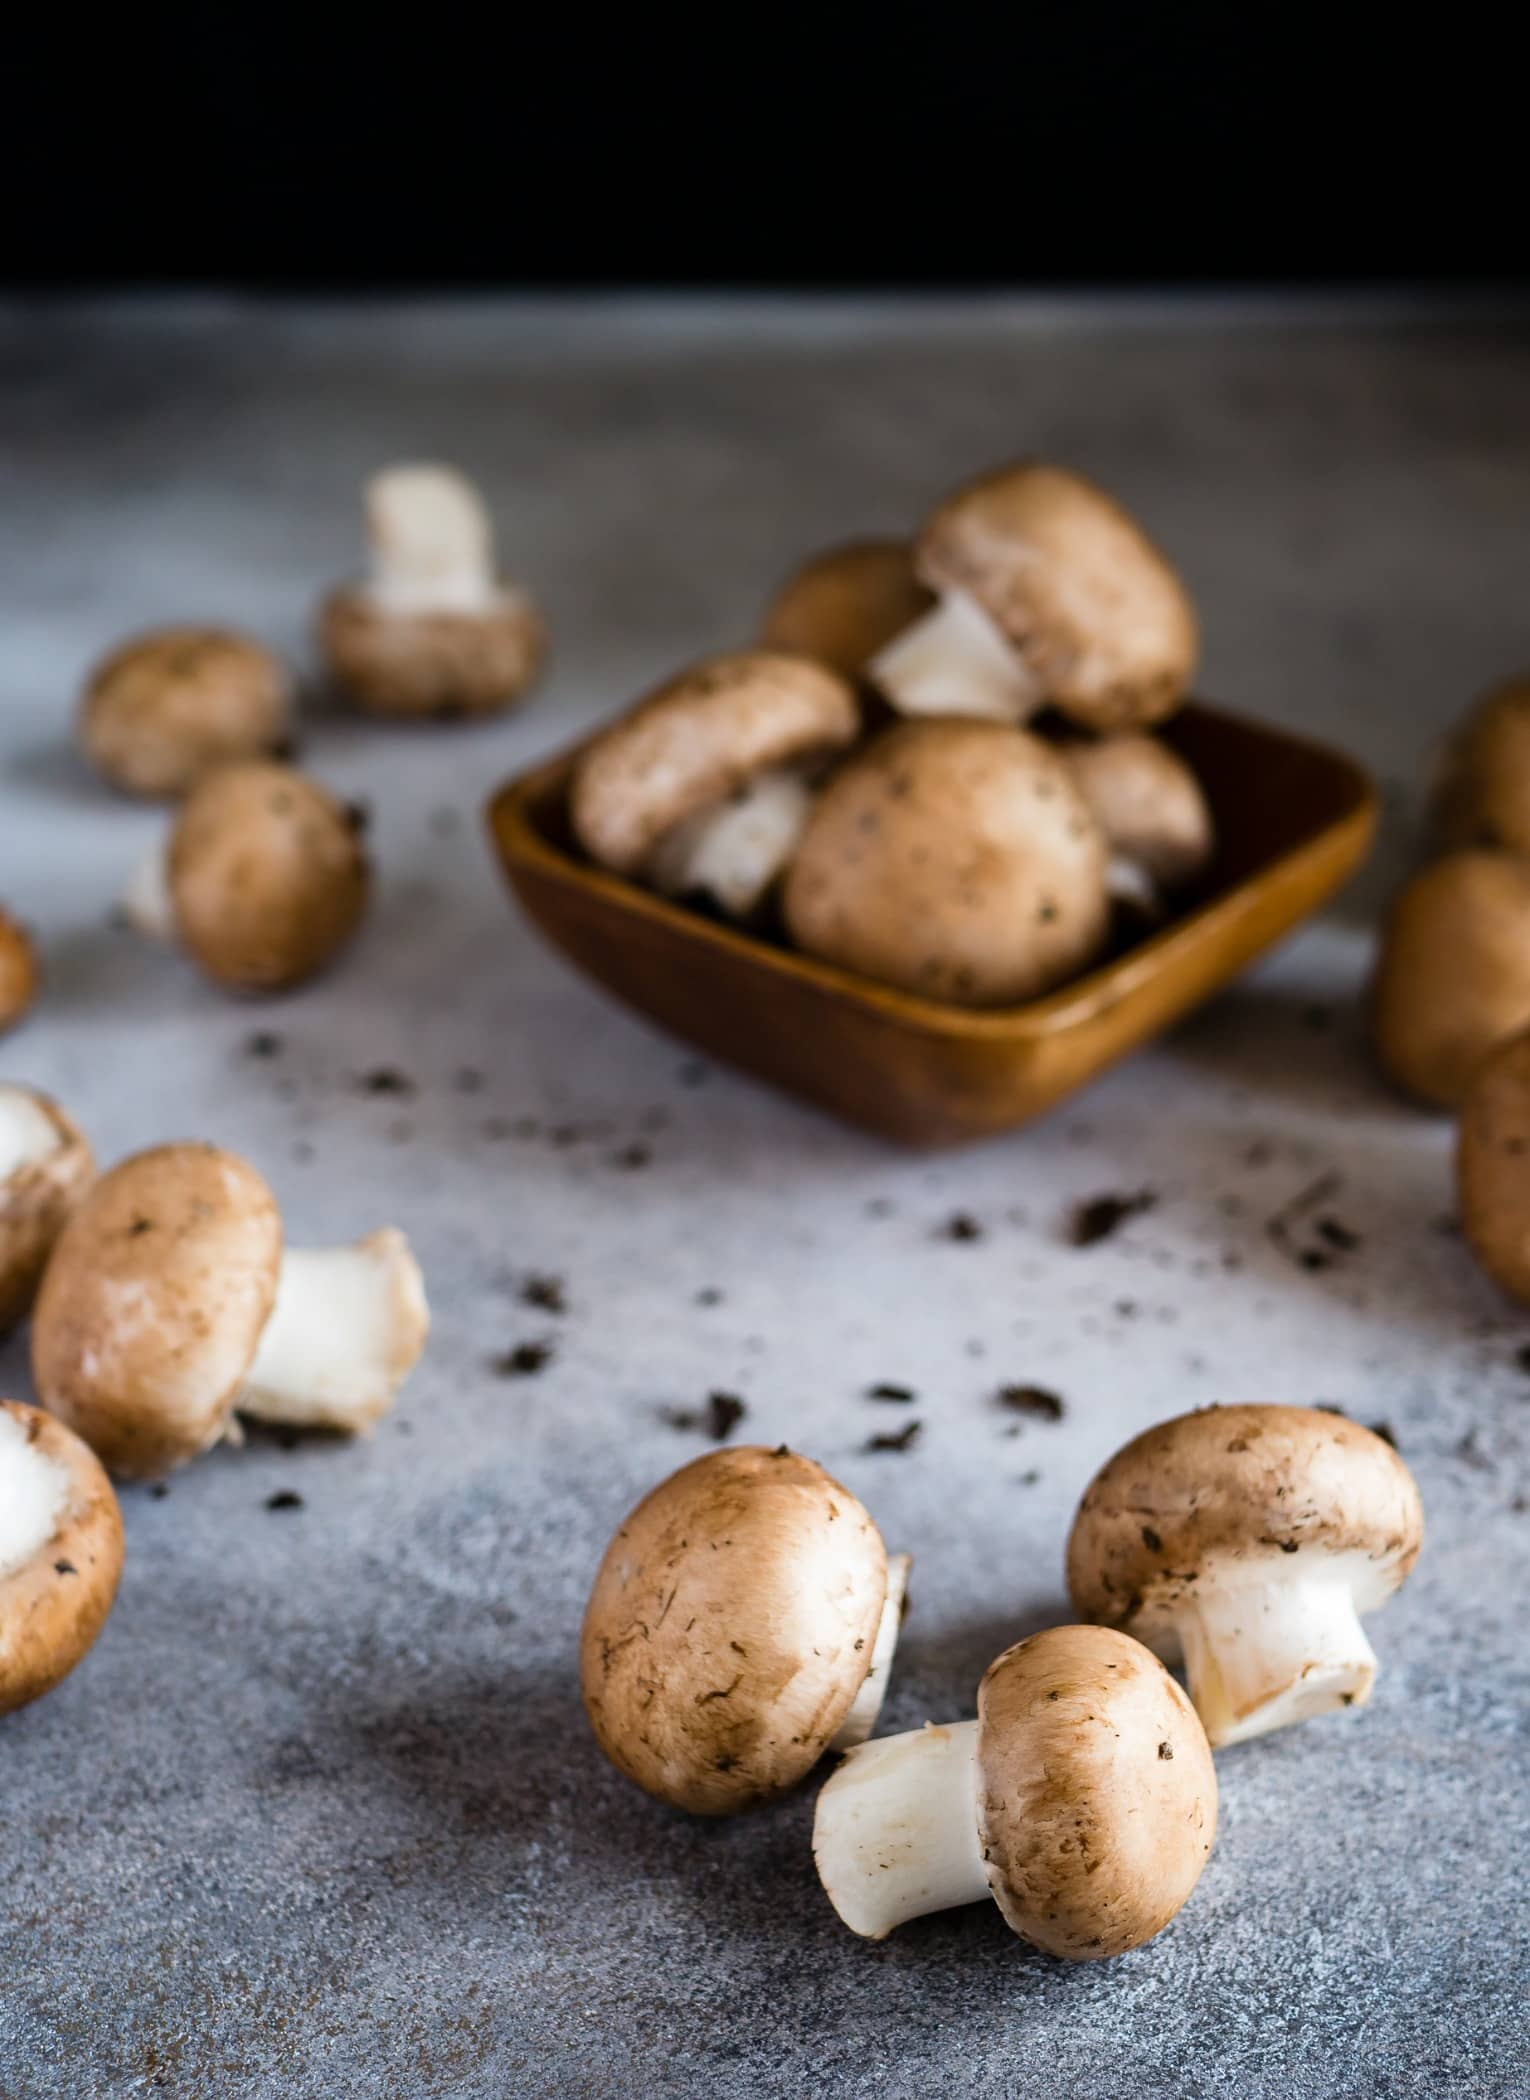 Some of my favorite food photos are of the ingredients the way they come to you. Raw. Unwashed. Touched only by nature and a farmer or two. I love the pure and unadorned beauty of these mushrooms.